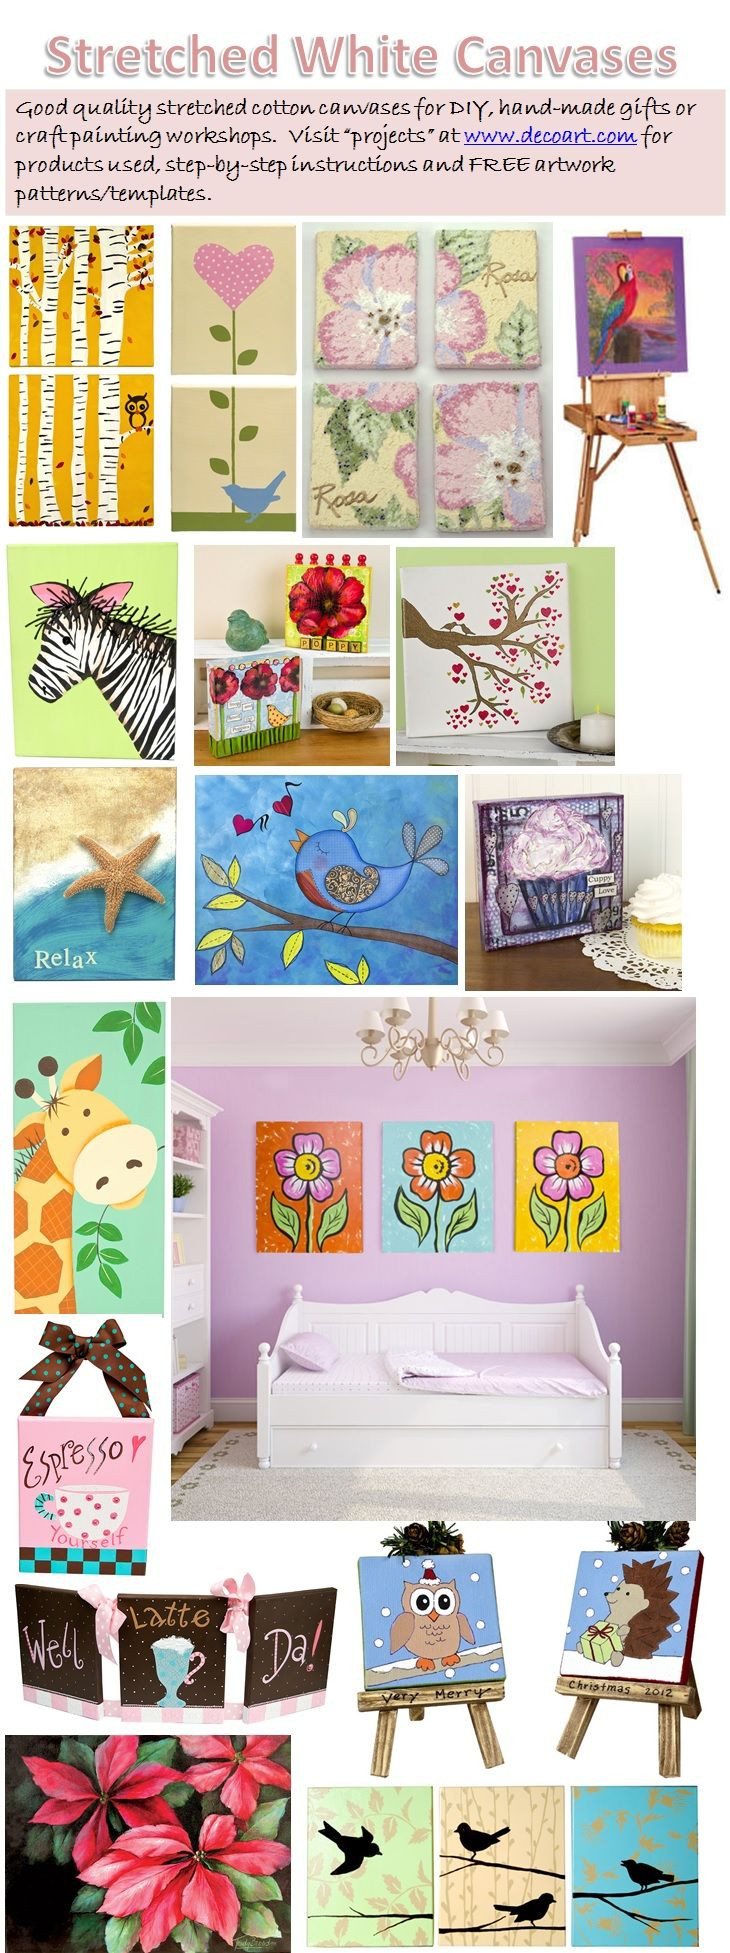 Workshop Ideas For Adults  Easy canvas painting projects DIY art and crafts Gift